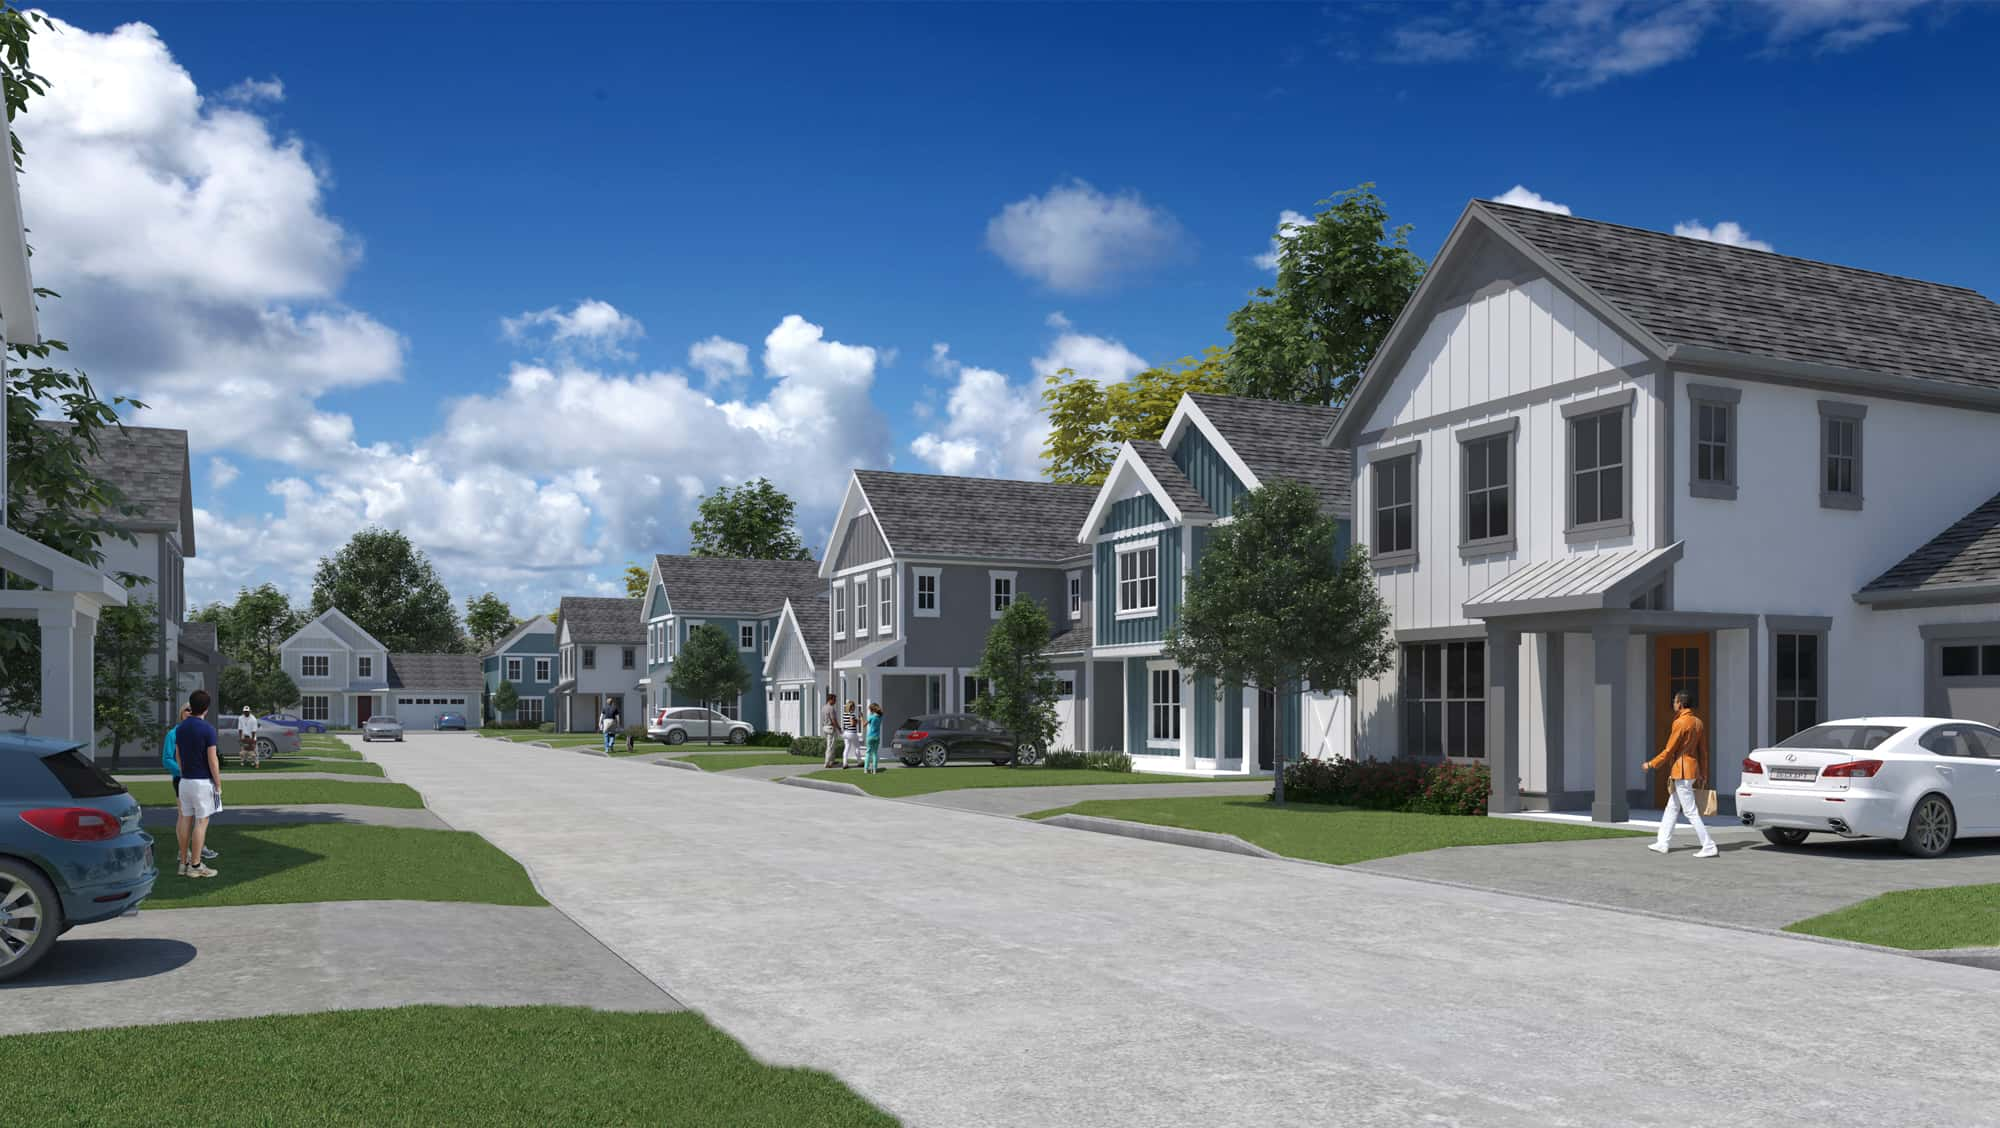 Rendering of neighborhood with two story houses green lawns and cars in driveways